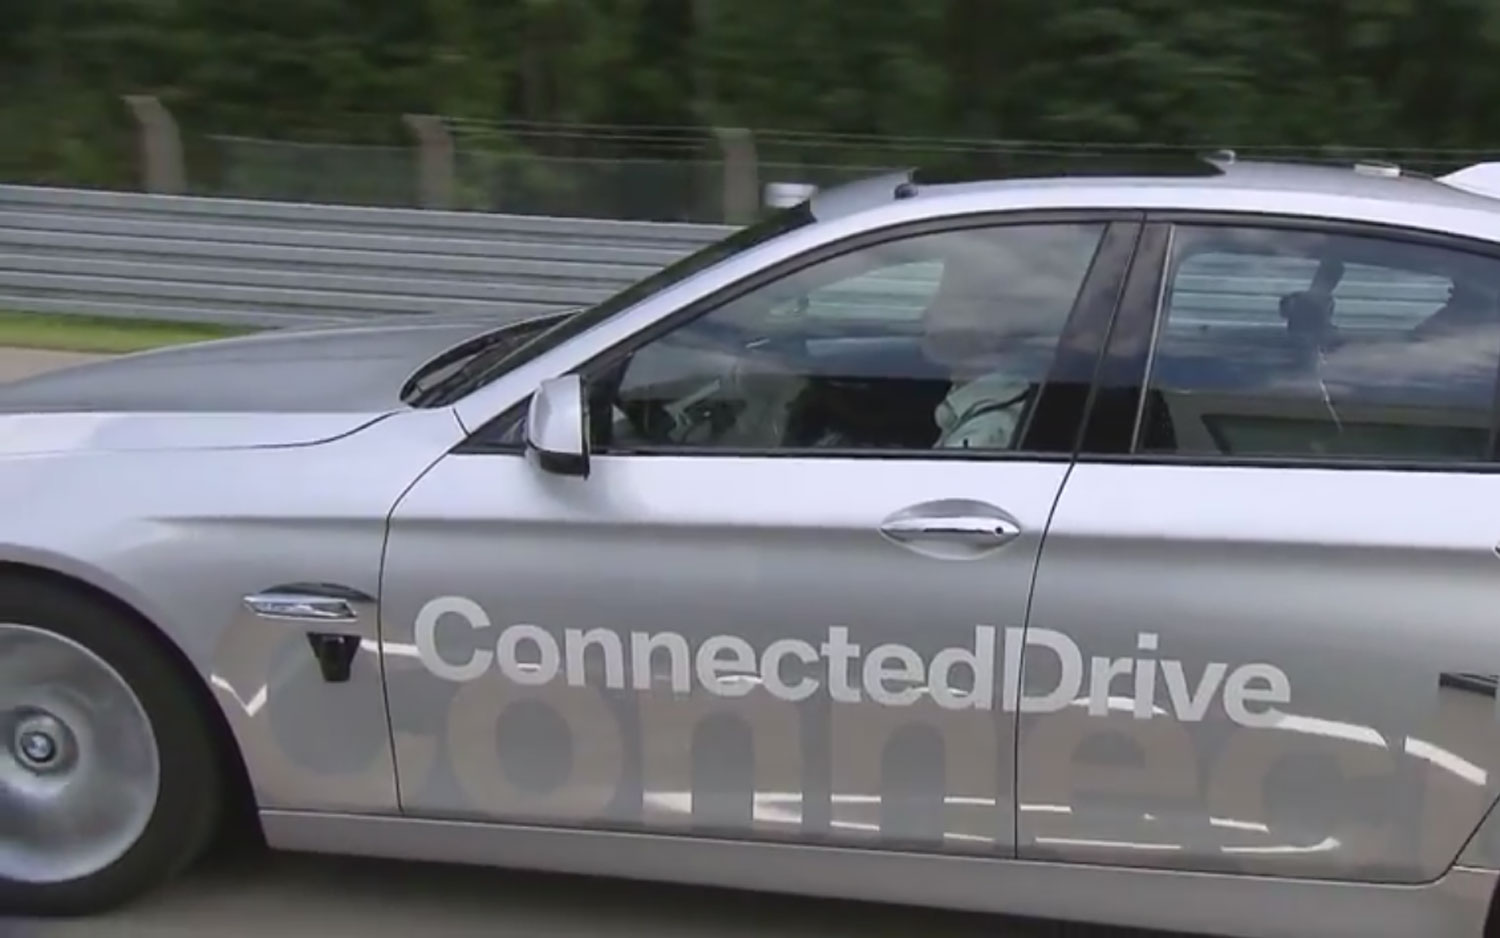 BMW ConnectedDrive Connect Driverless Car Profile